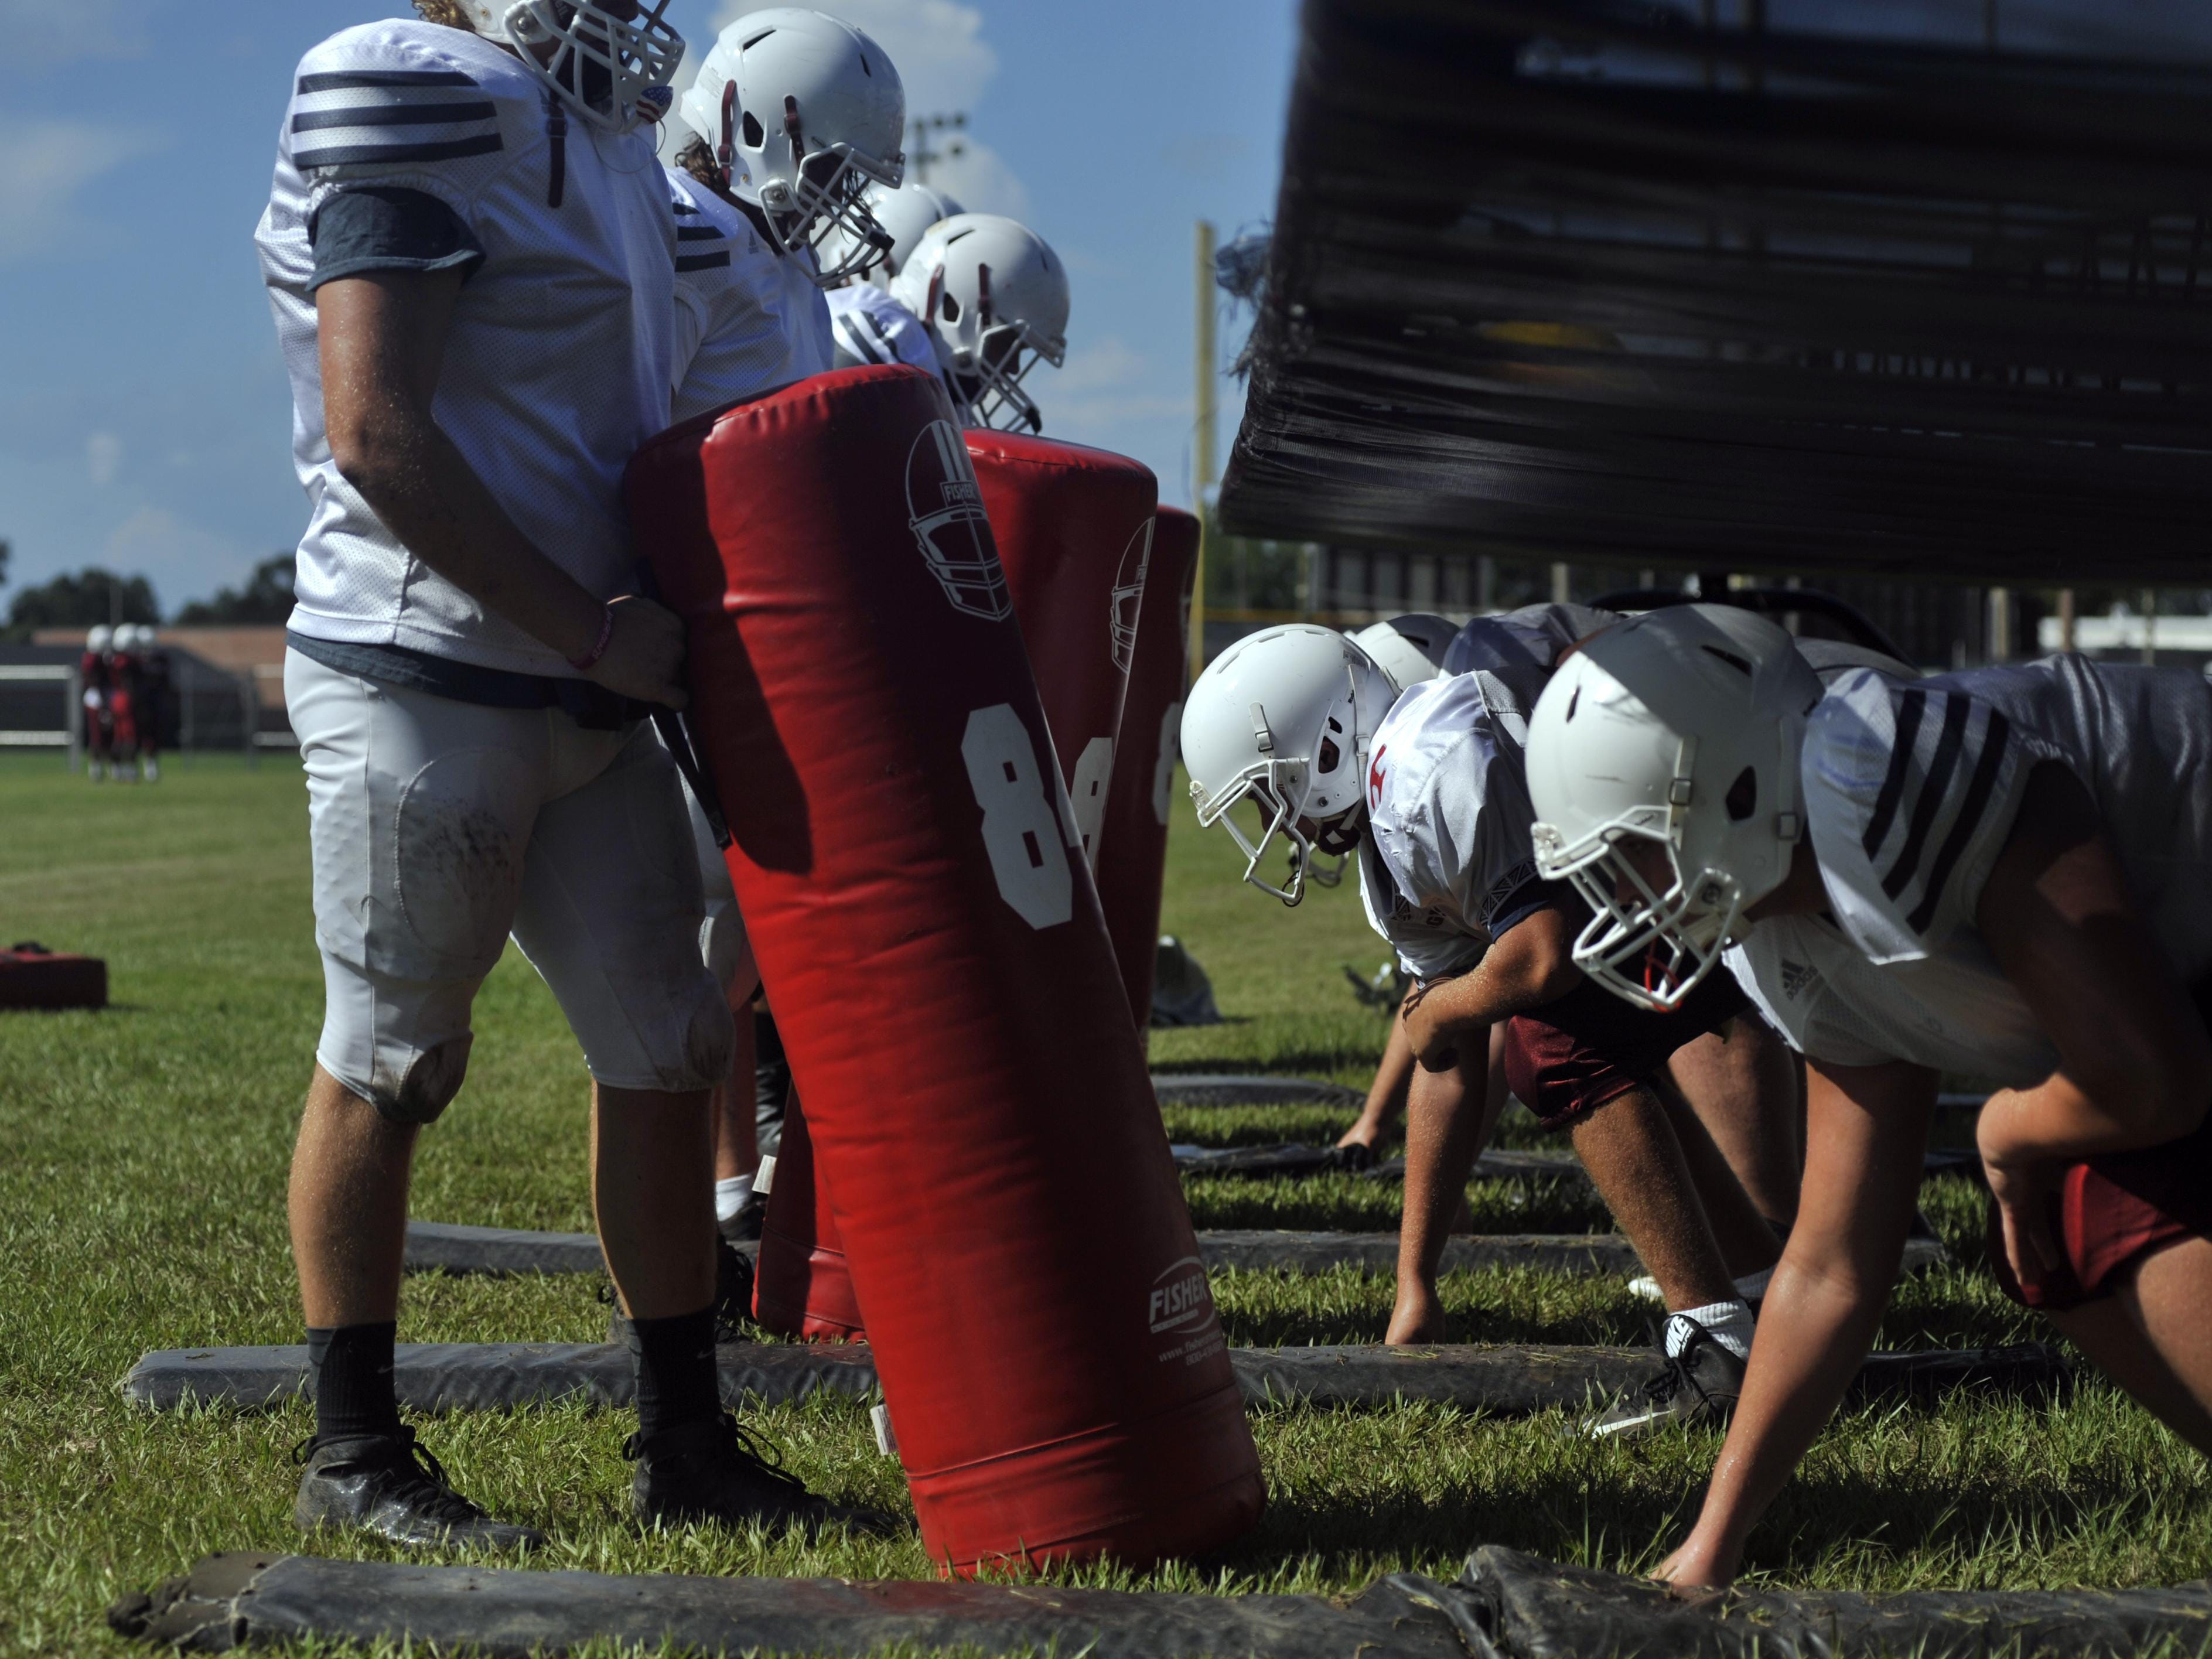 The Tate Aggies line up to run drills during practice on Aug. 16, 2016.